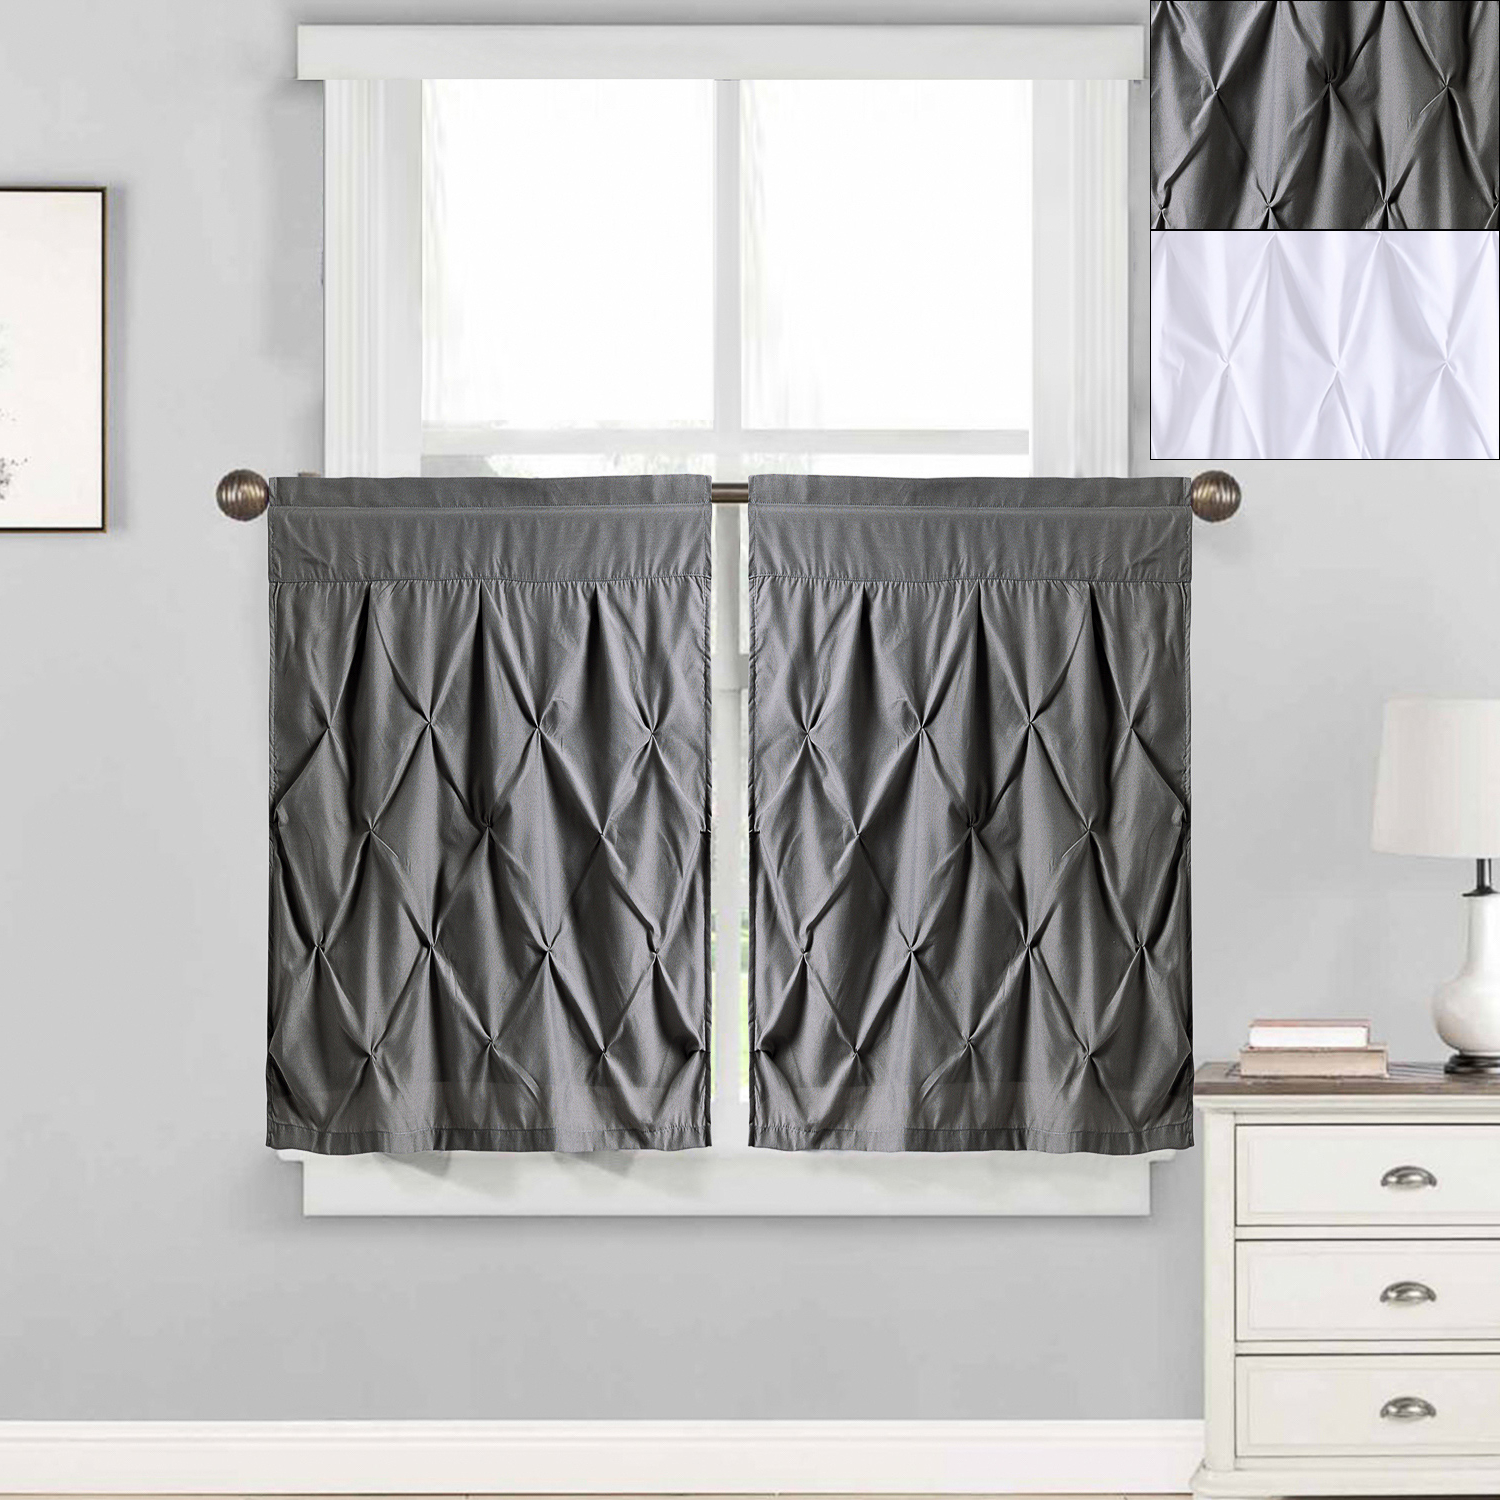 "Sheer Lace Elongated Kitchen Curtain Tier Pairs Regarding Widely Used Details About Hudson Pintuck Kitchen Window Curtain Tier Pair 24""x30"" (View 12 of 20)"